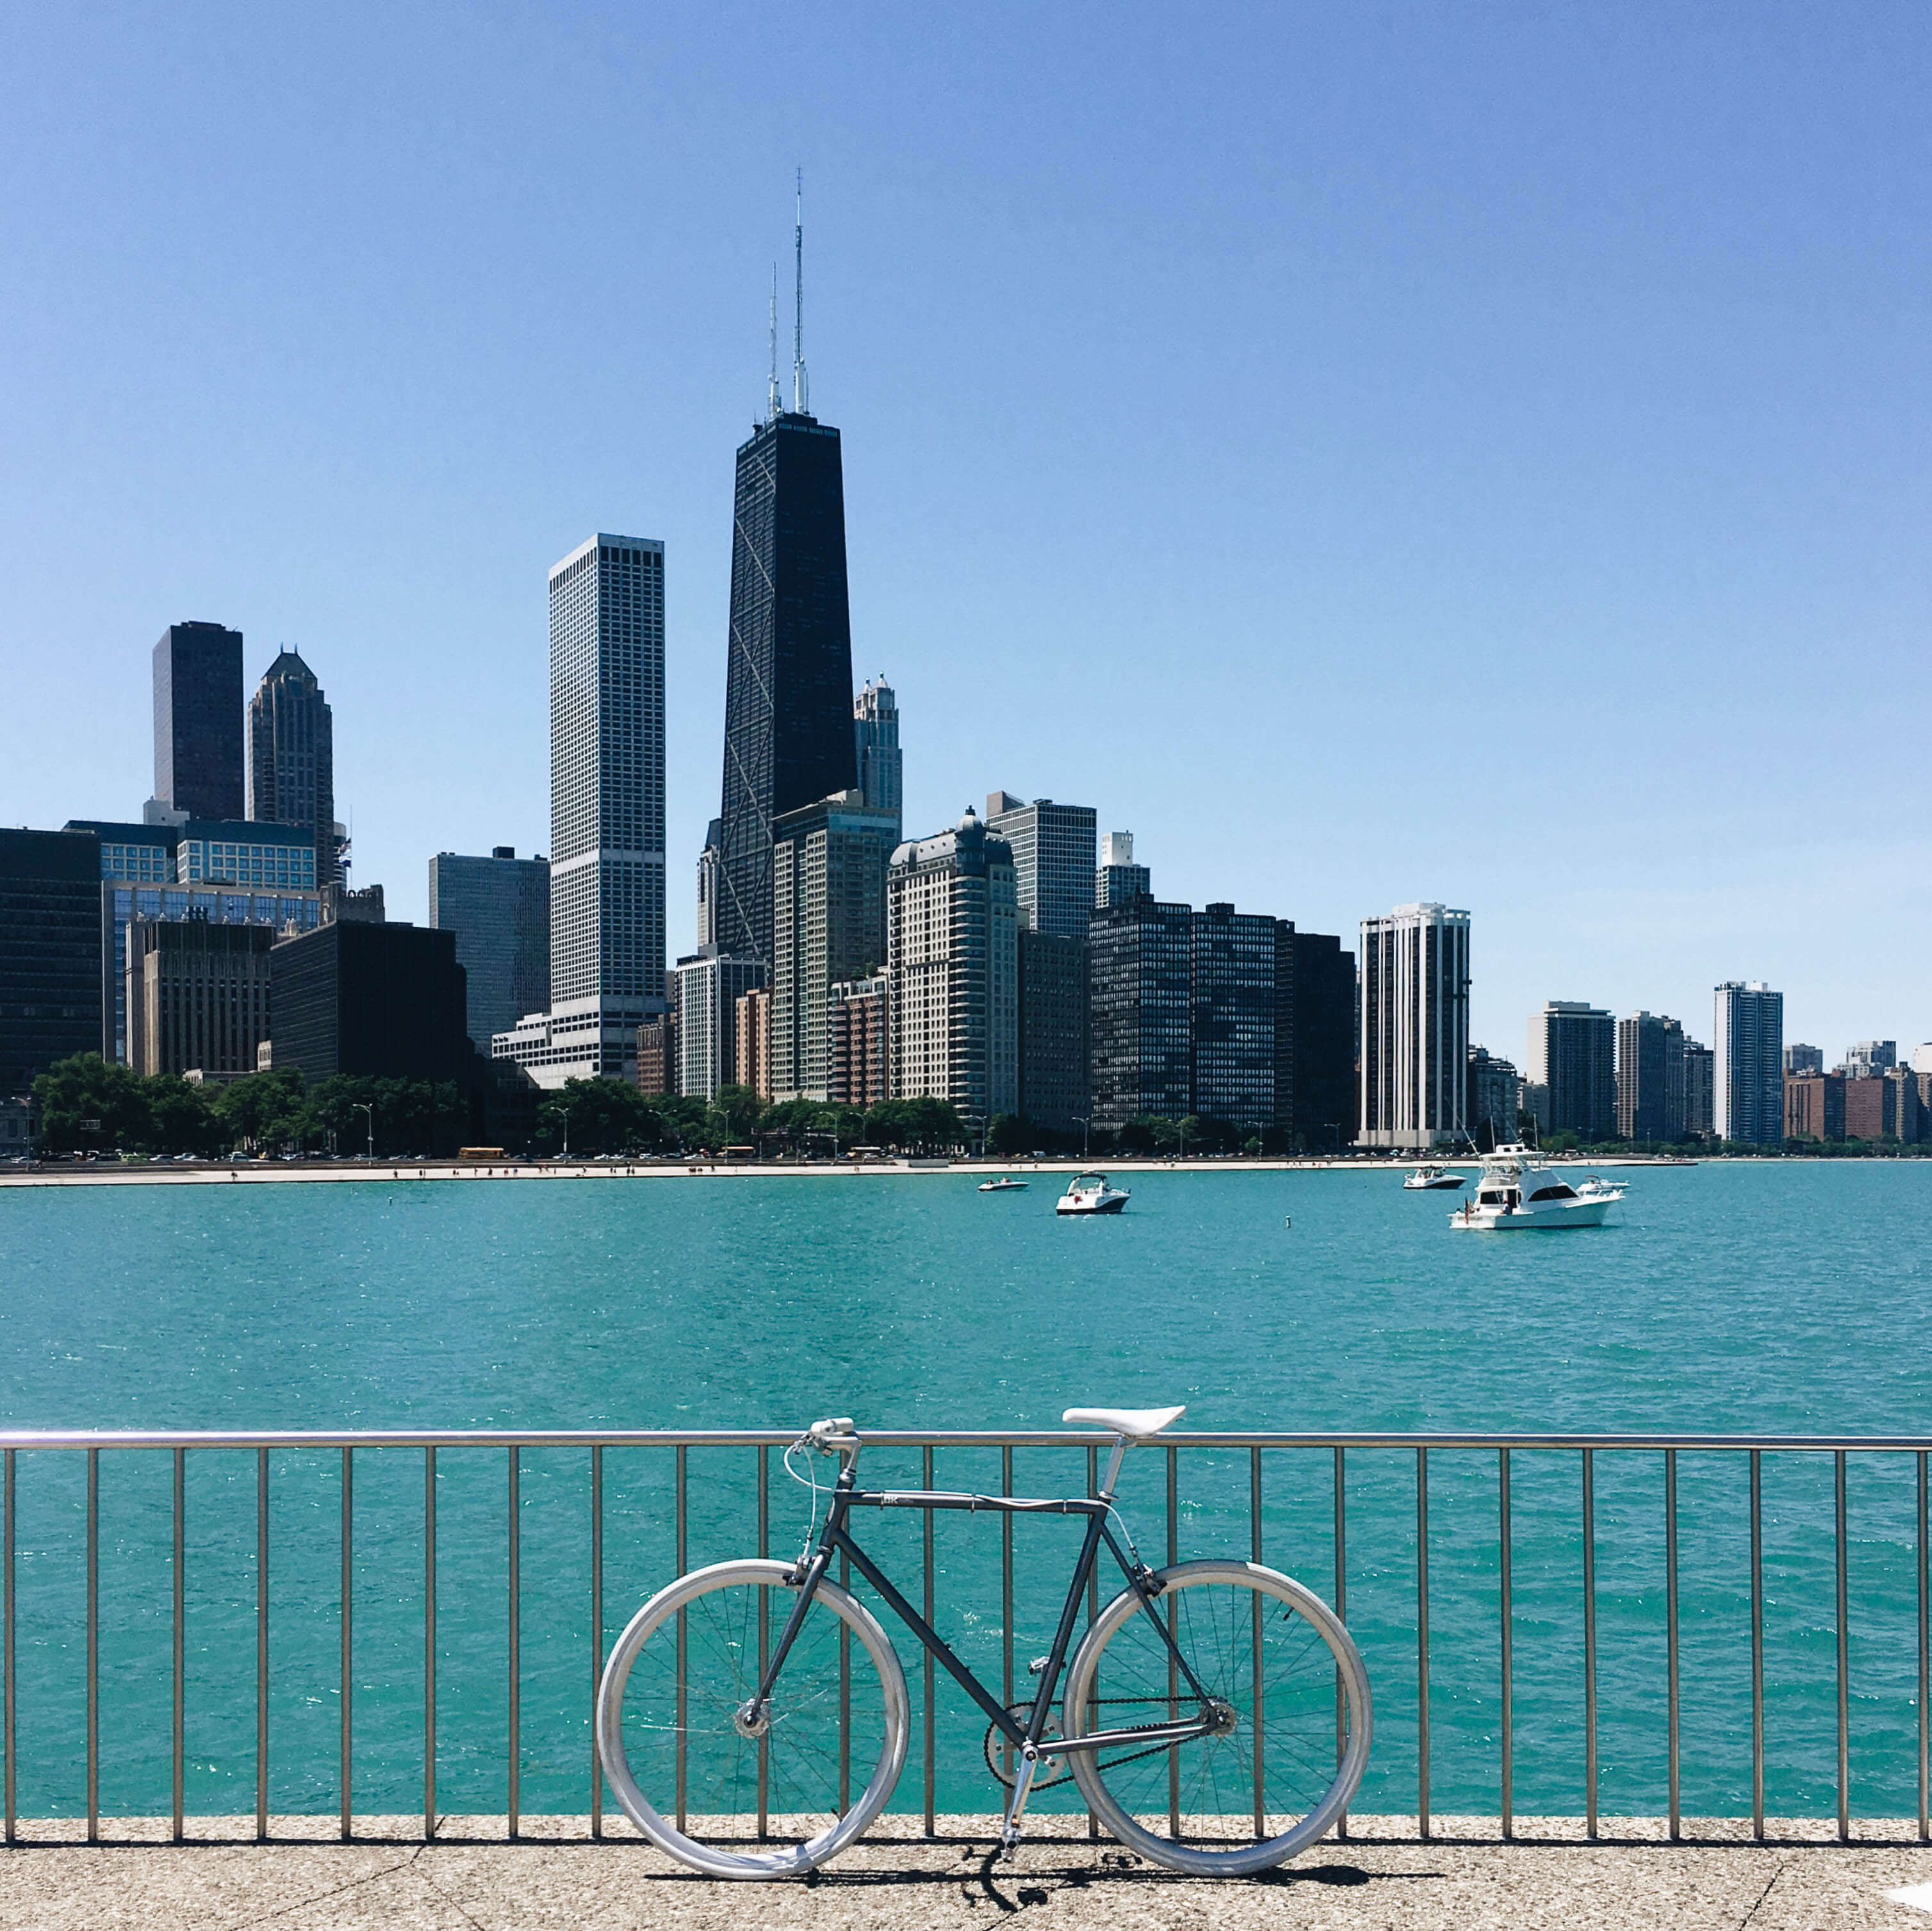 The Chicago City Photo Guide